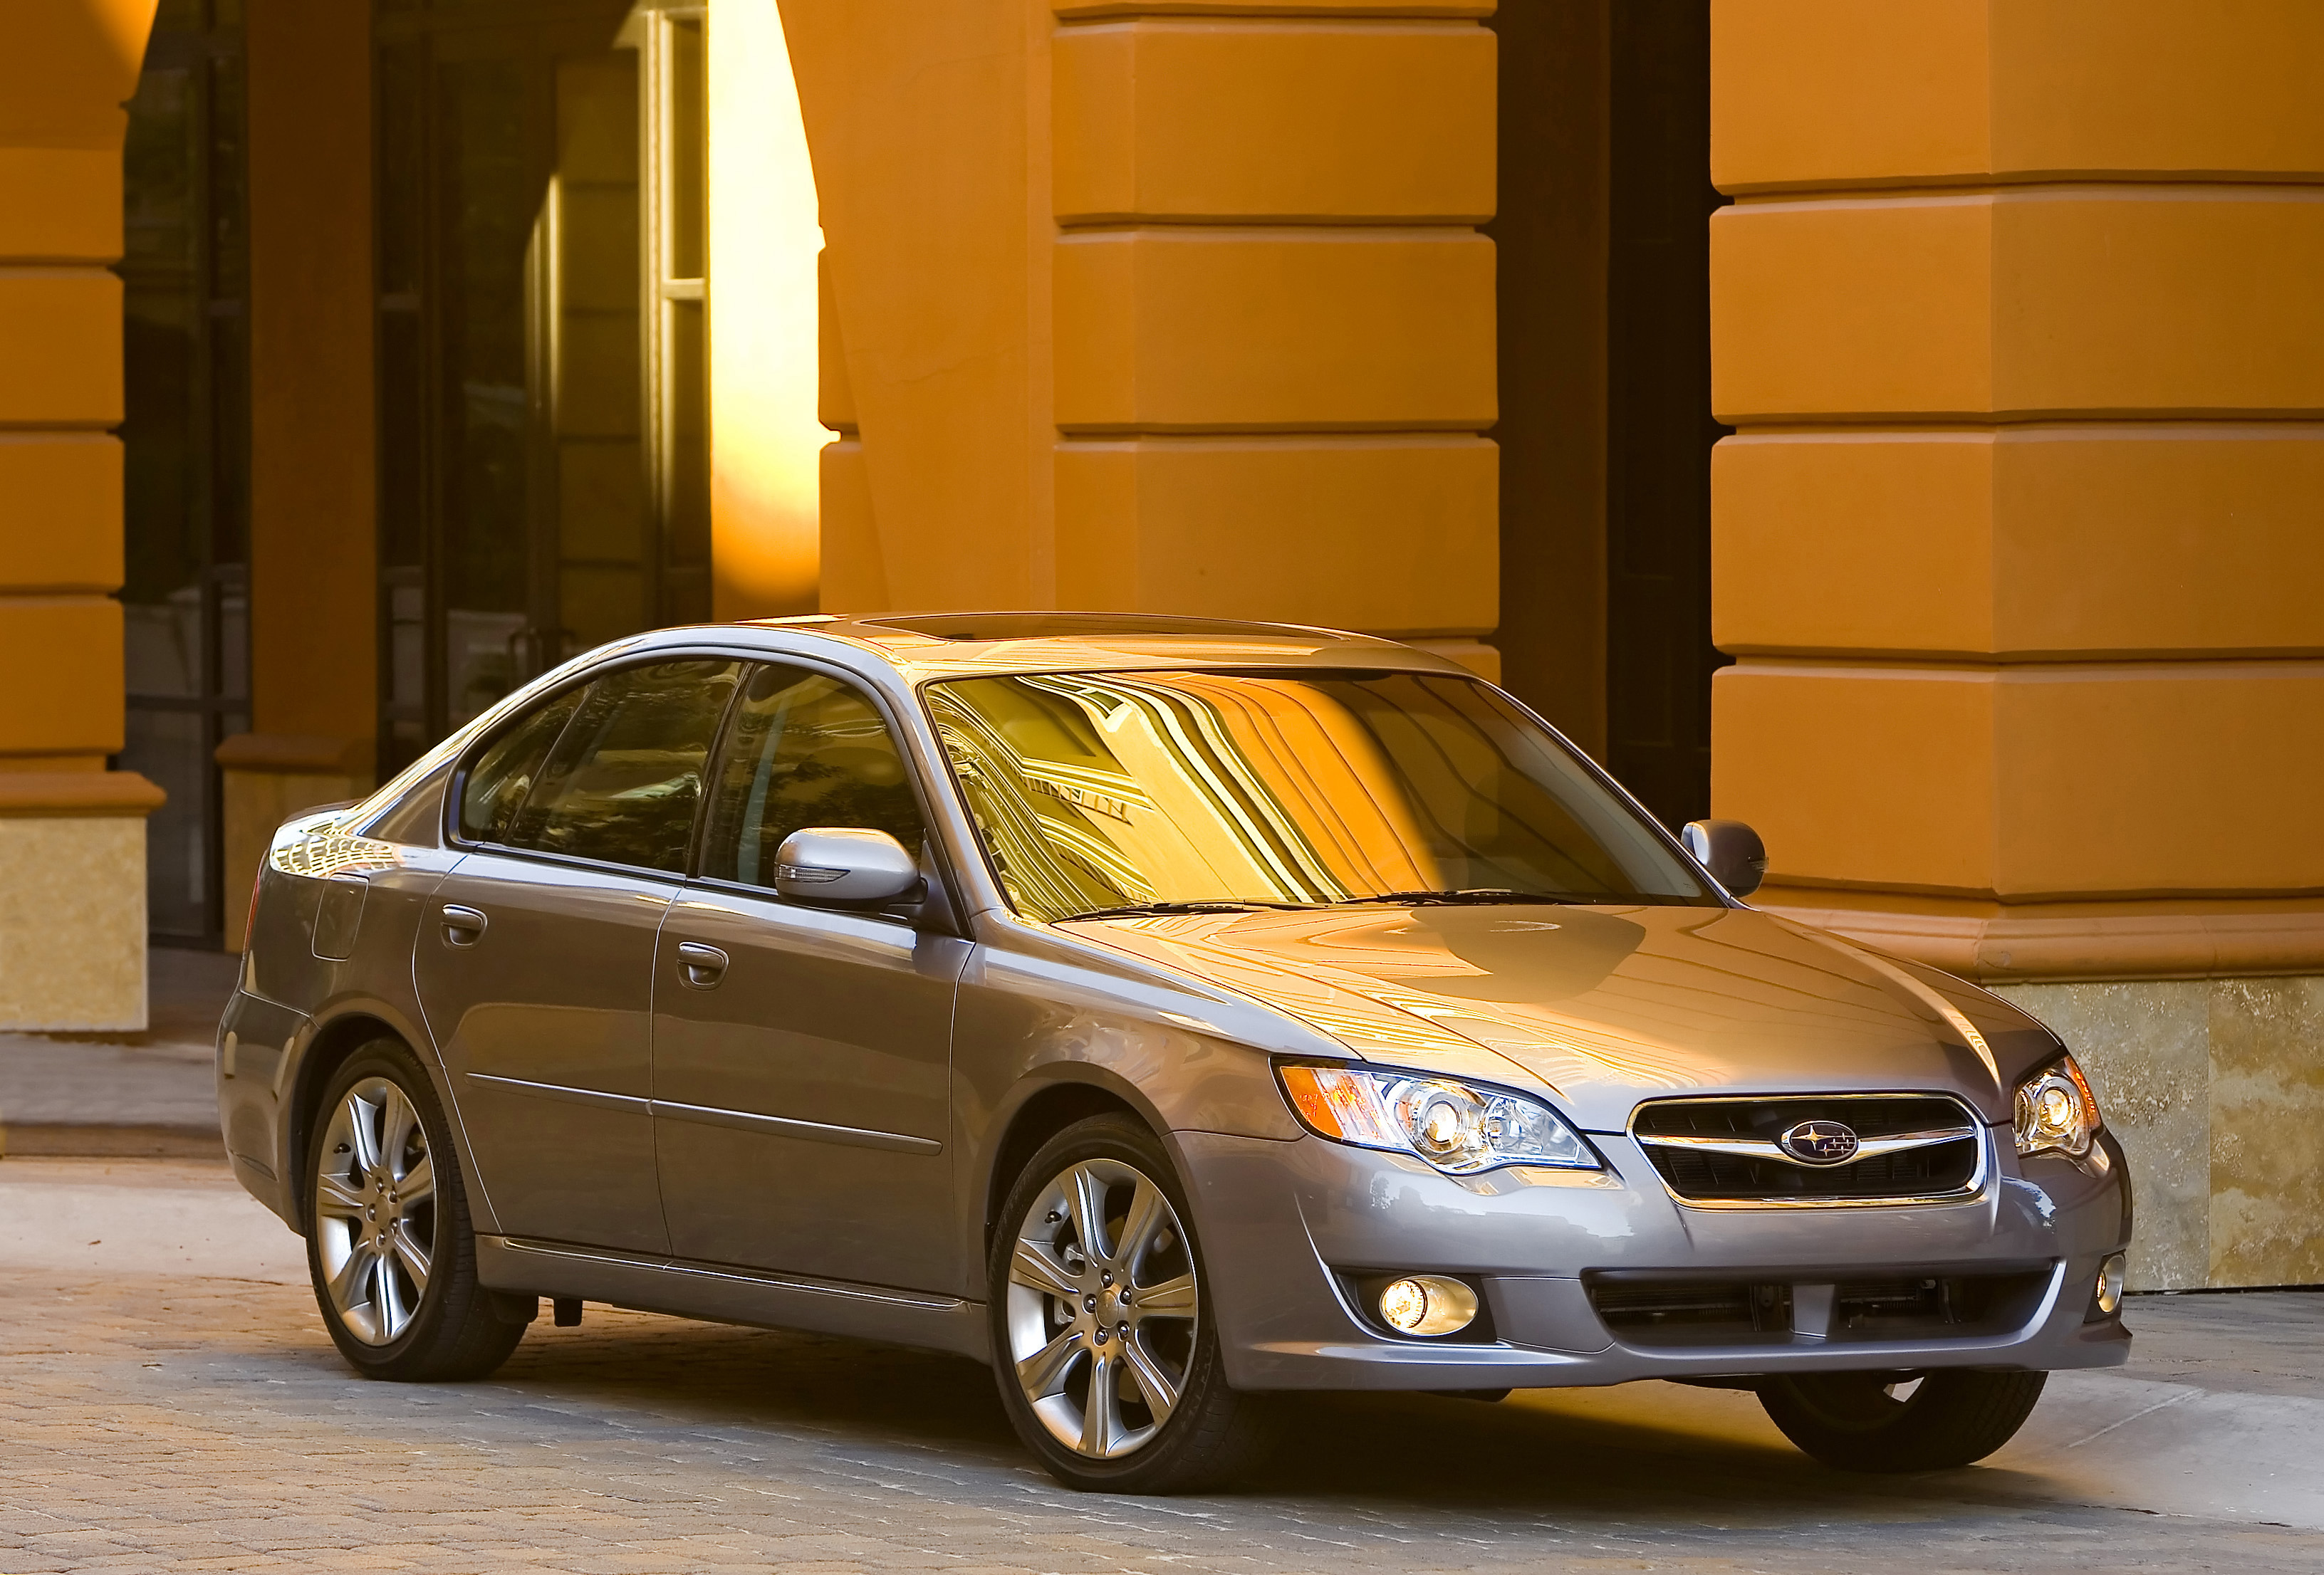 Subaru Legacy: Recommended shifting speeds